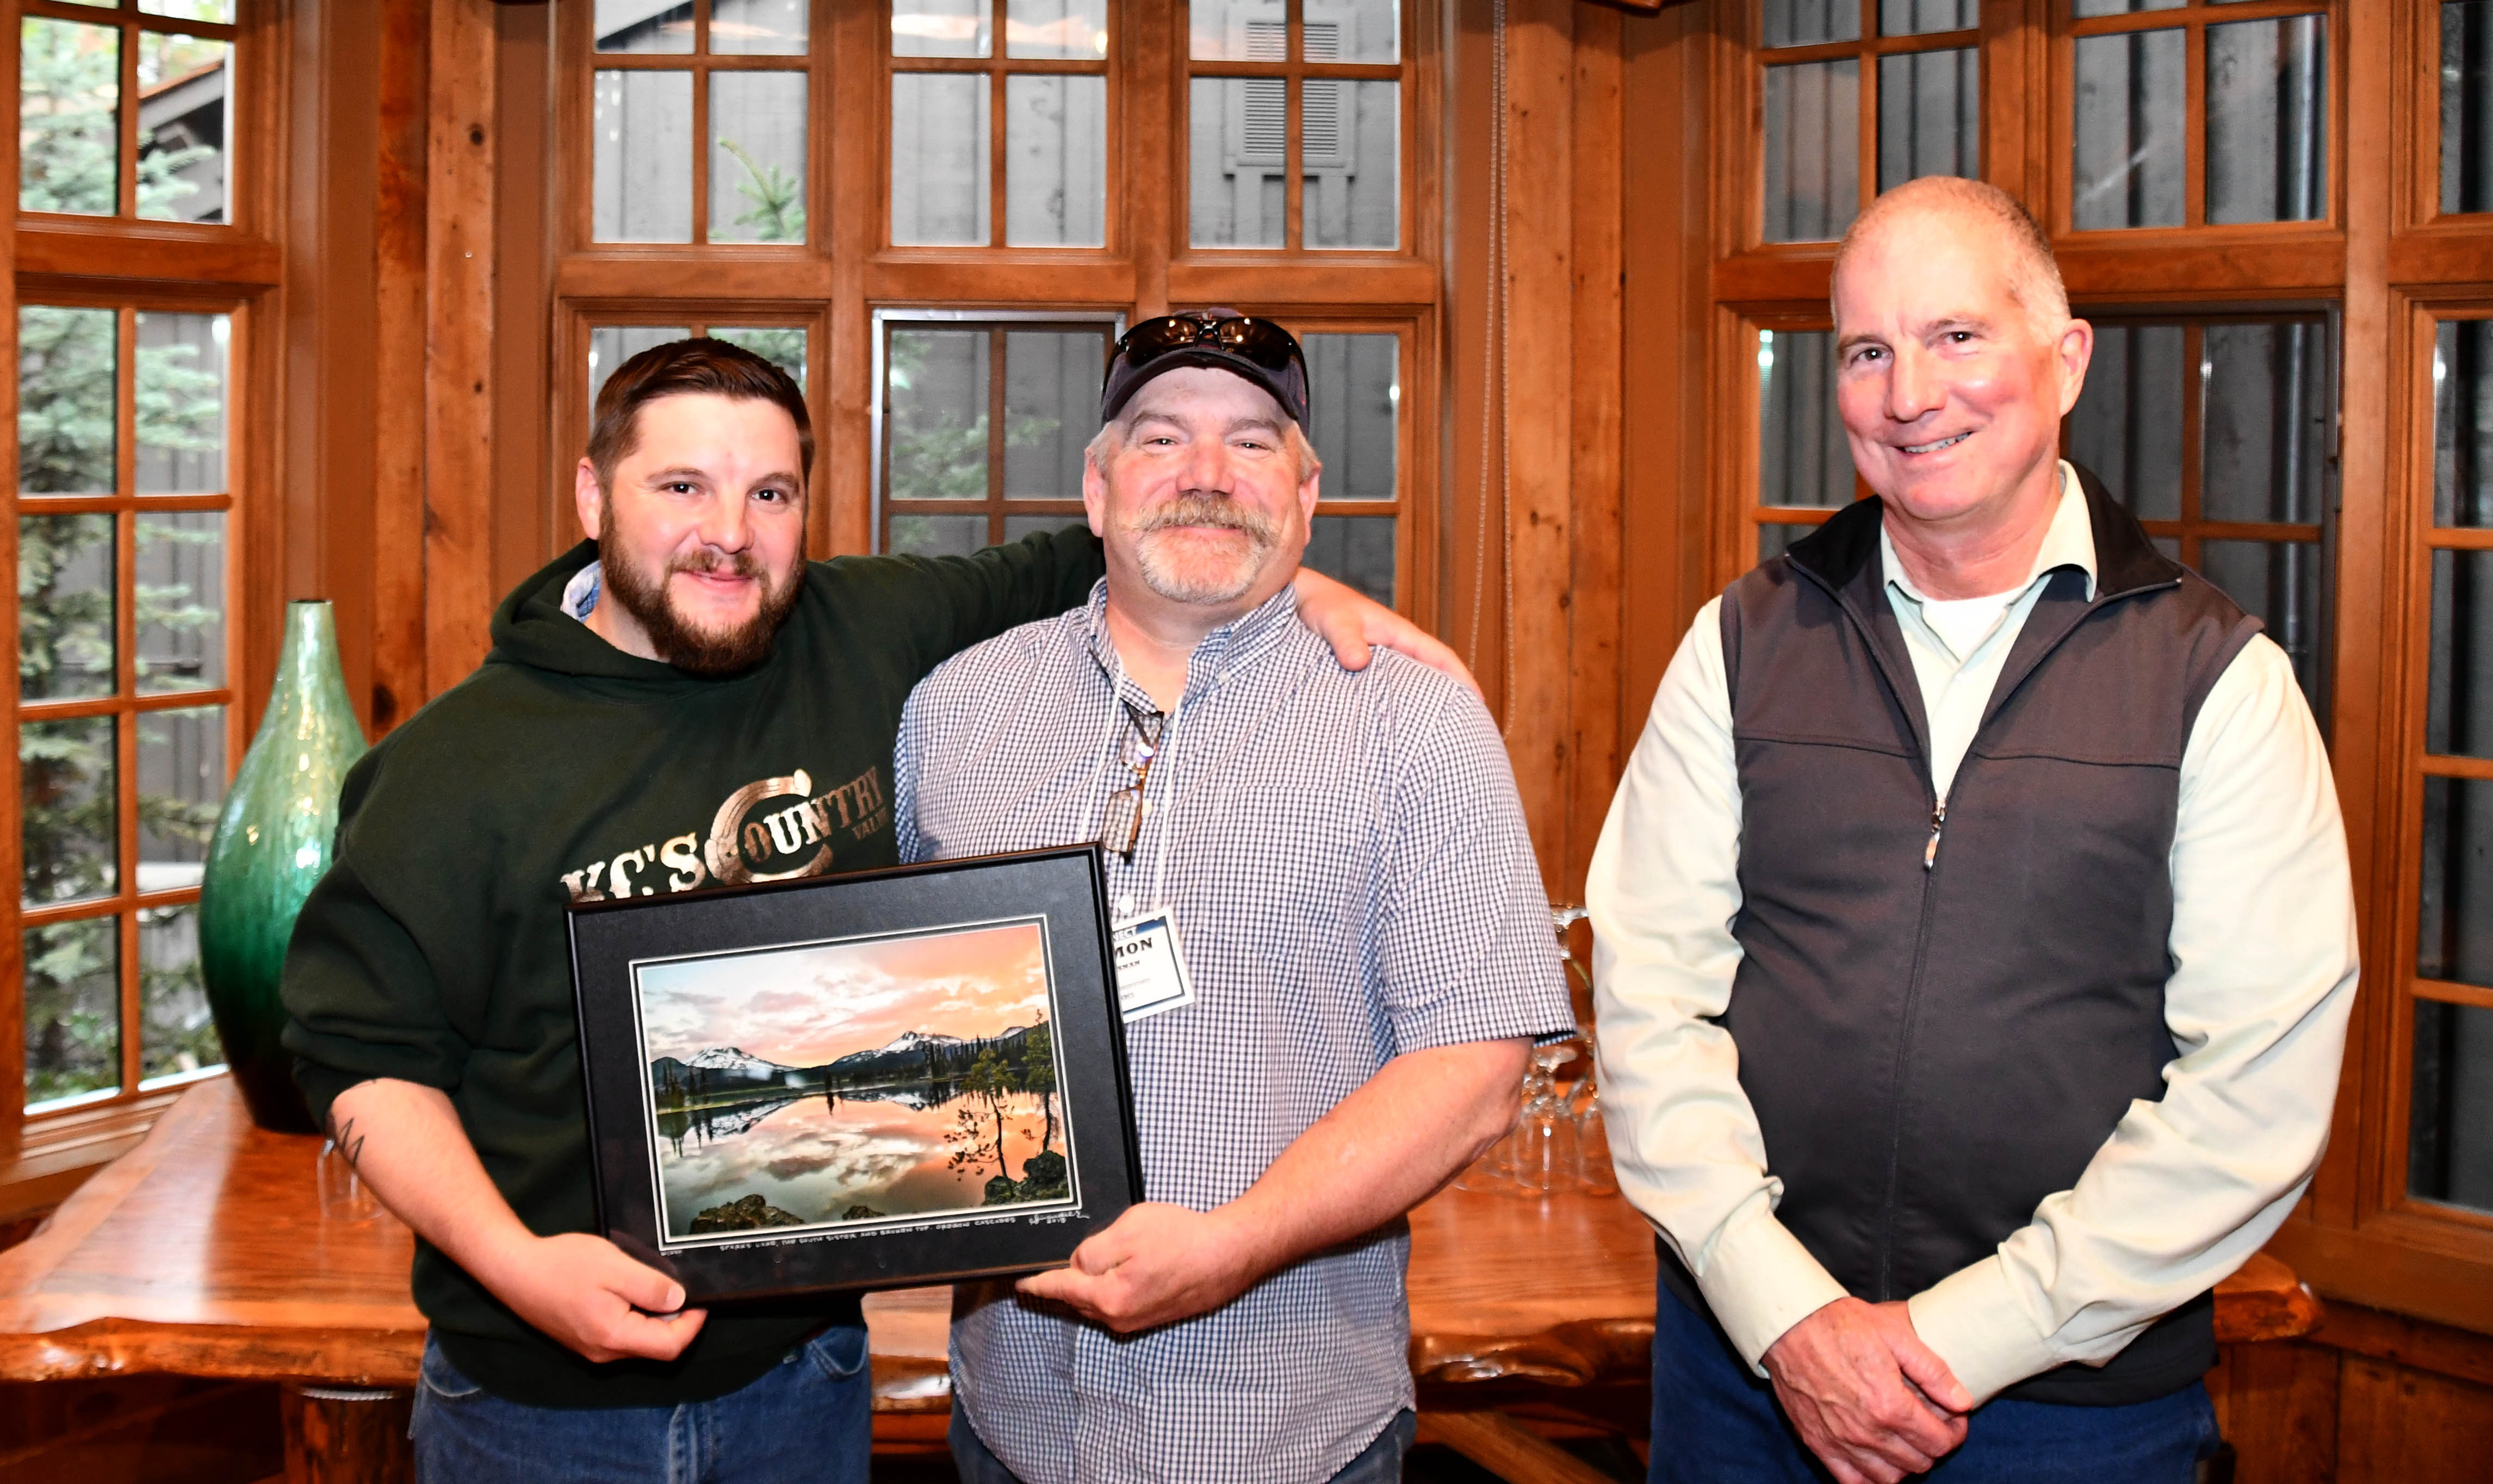 Pictured Left to Right: Chase Schultz of the Wheeler Soil and Water Conservation District (SWCD); Damon Brosnan, District Conservationist for Gilliam and Wheeler counties with the USDA Natural Resources Conservation Service (NRCS); and Kevin Conroy, Acting State Conservationist for NRCS Oregon.